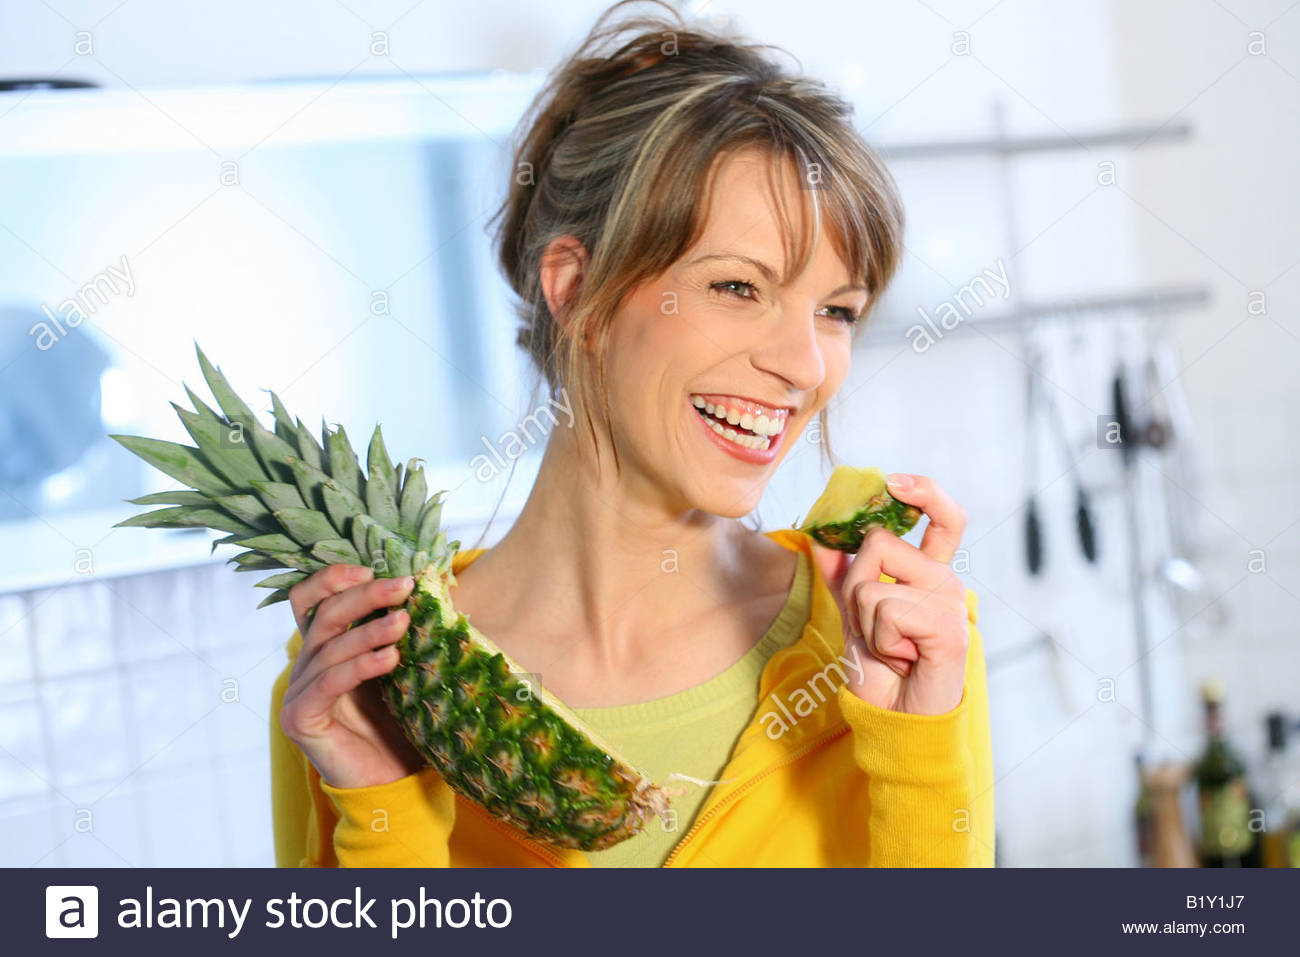 woman eating pineapple - Stock Image